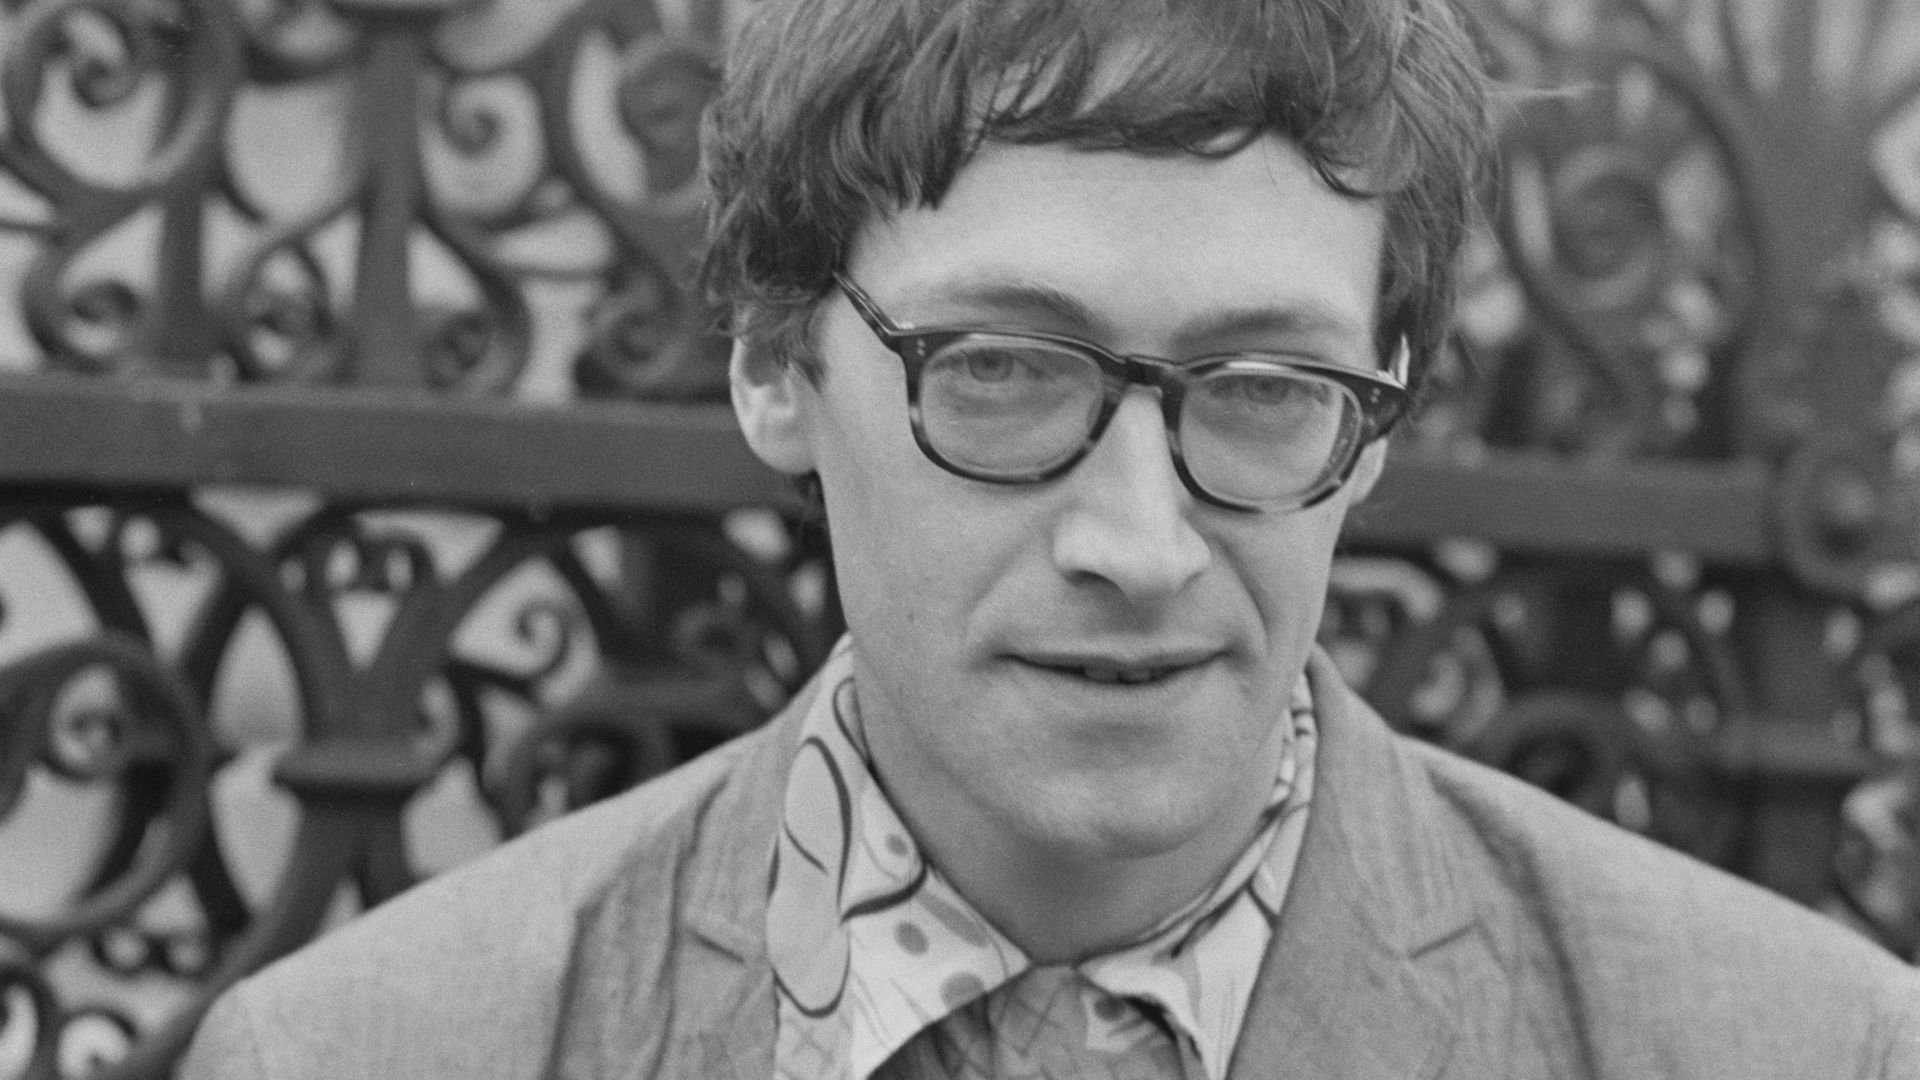 Michael Horovitz at the Albert Memorial in South Kensington, June 11, 1965 - Credit: Photo by M. Stroud/Daily Express/Hulton Archive/Getty Images